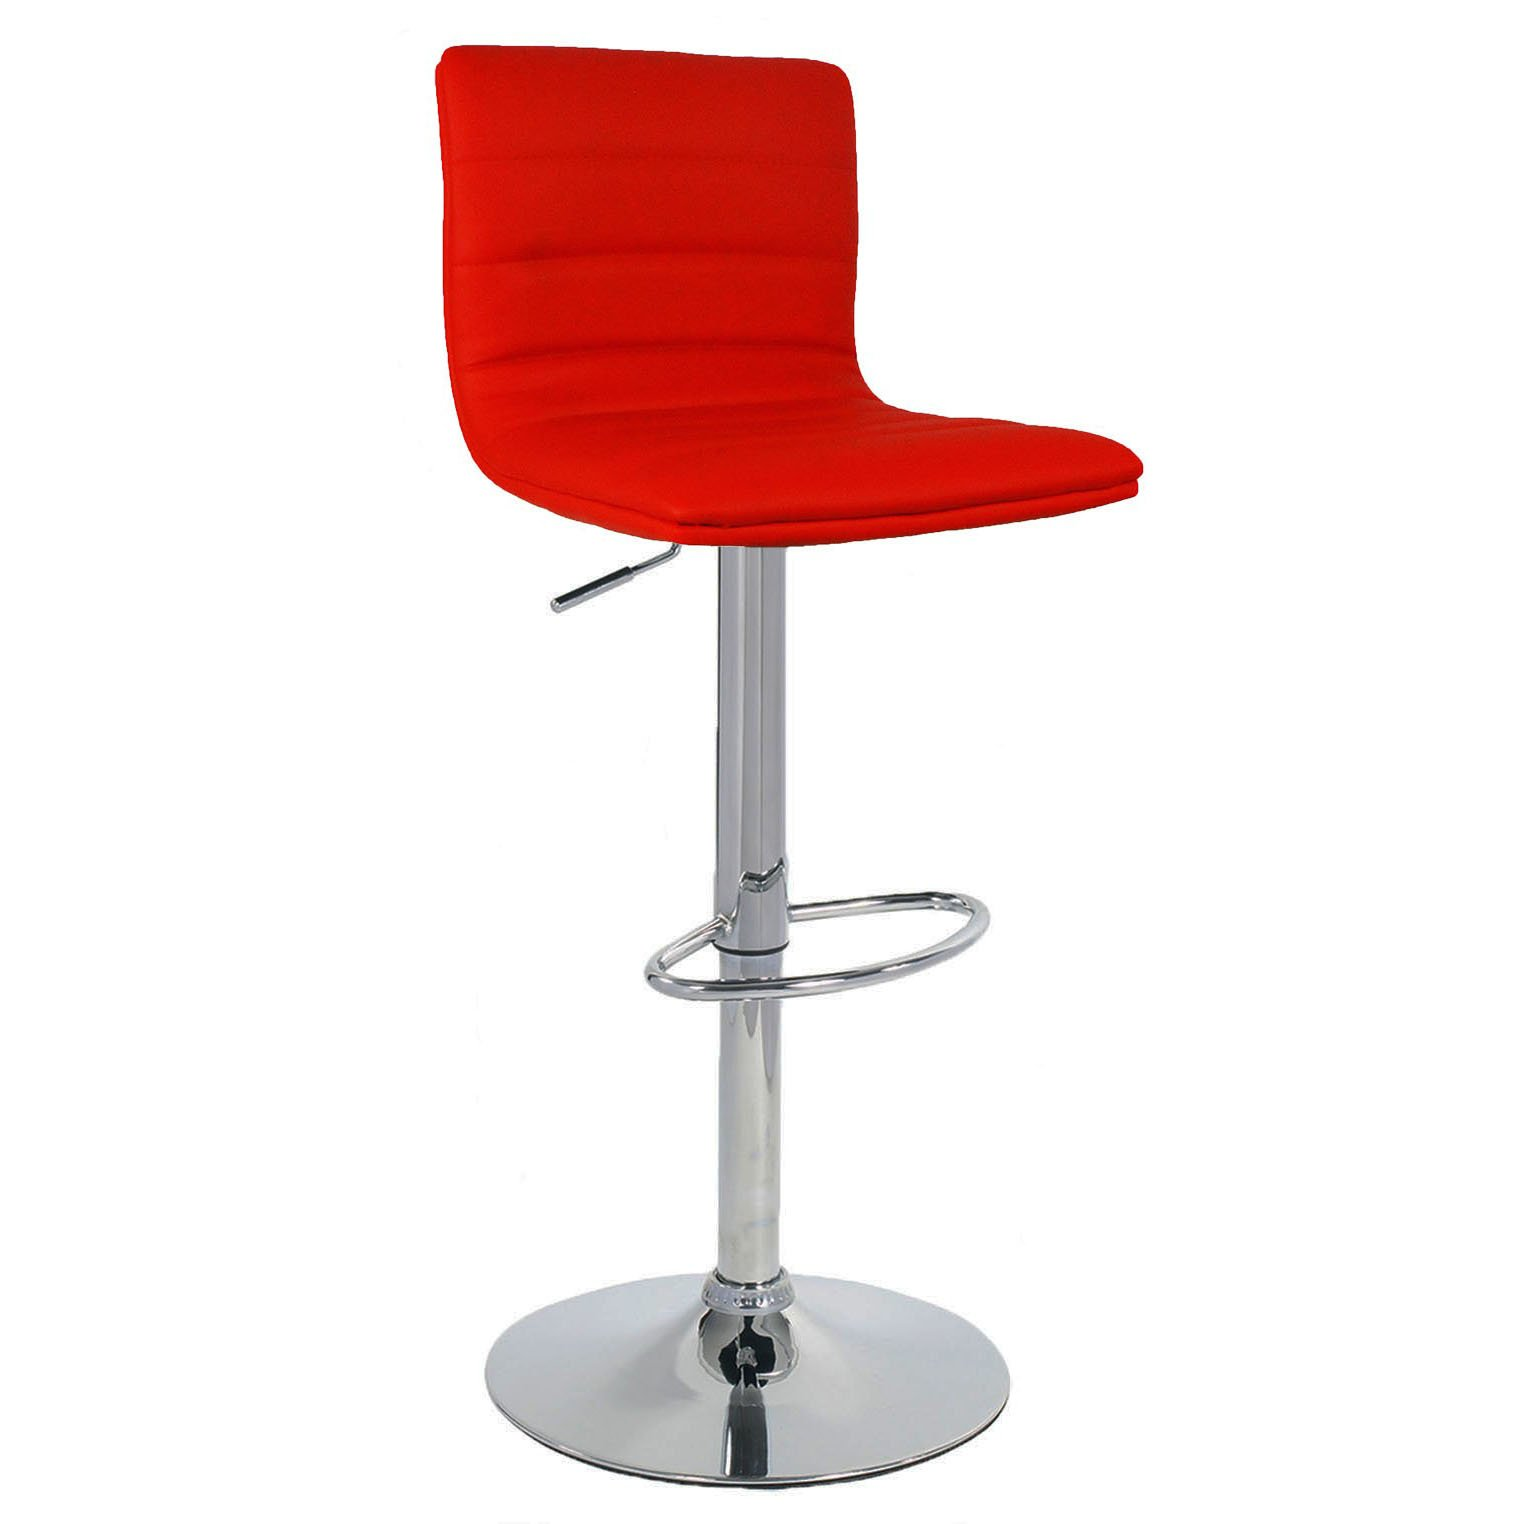 Aldo Bar Stool Red Size X 390mm X 390mm